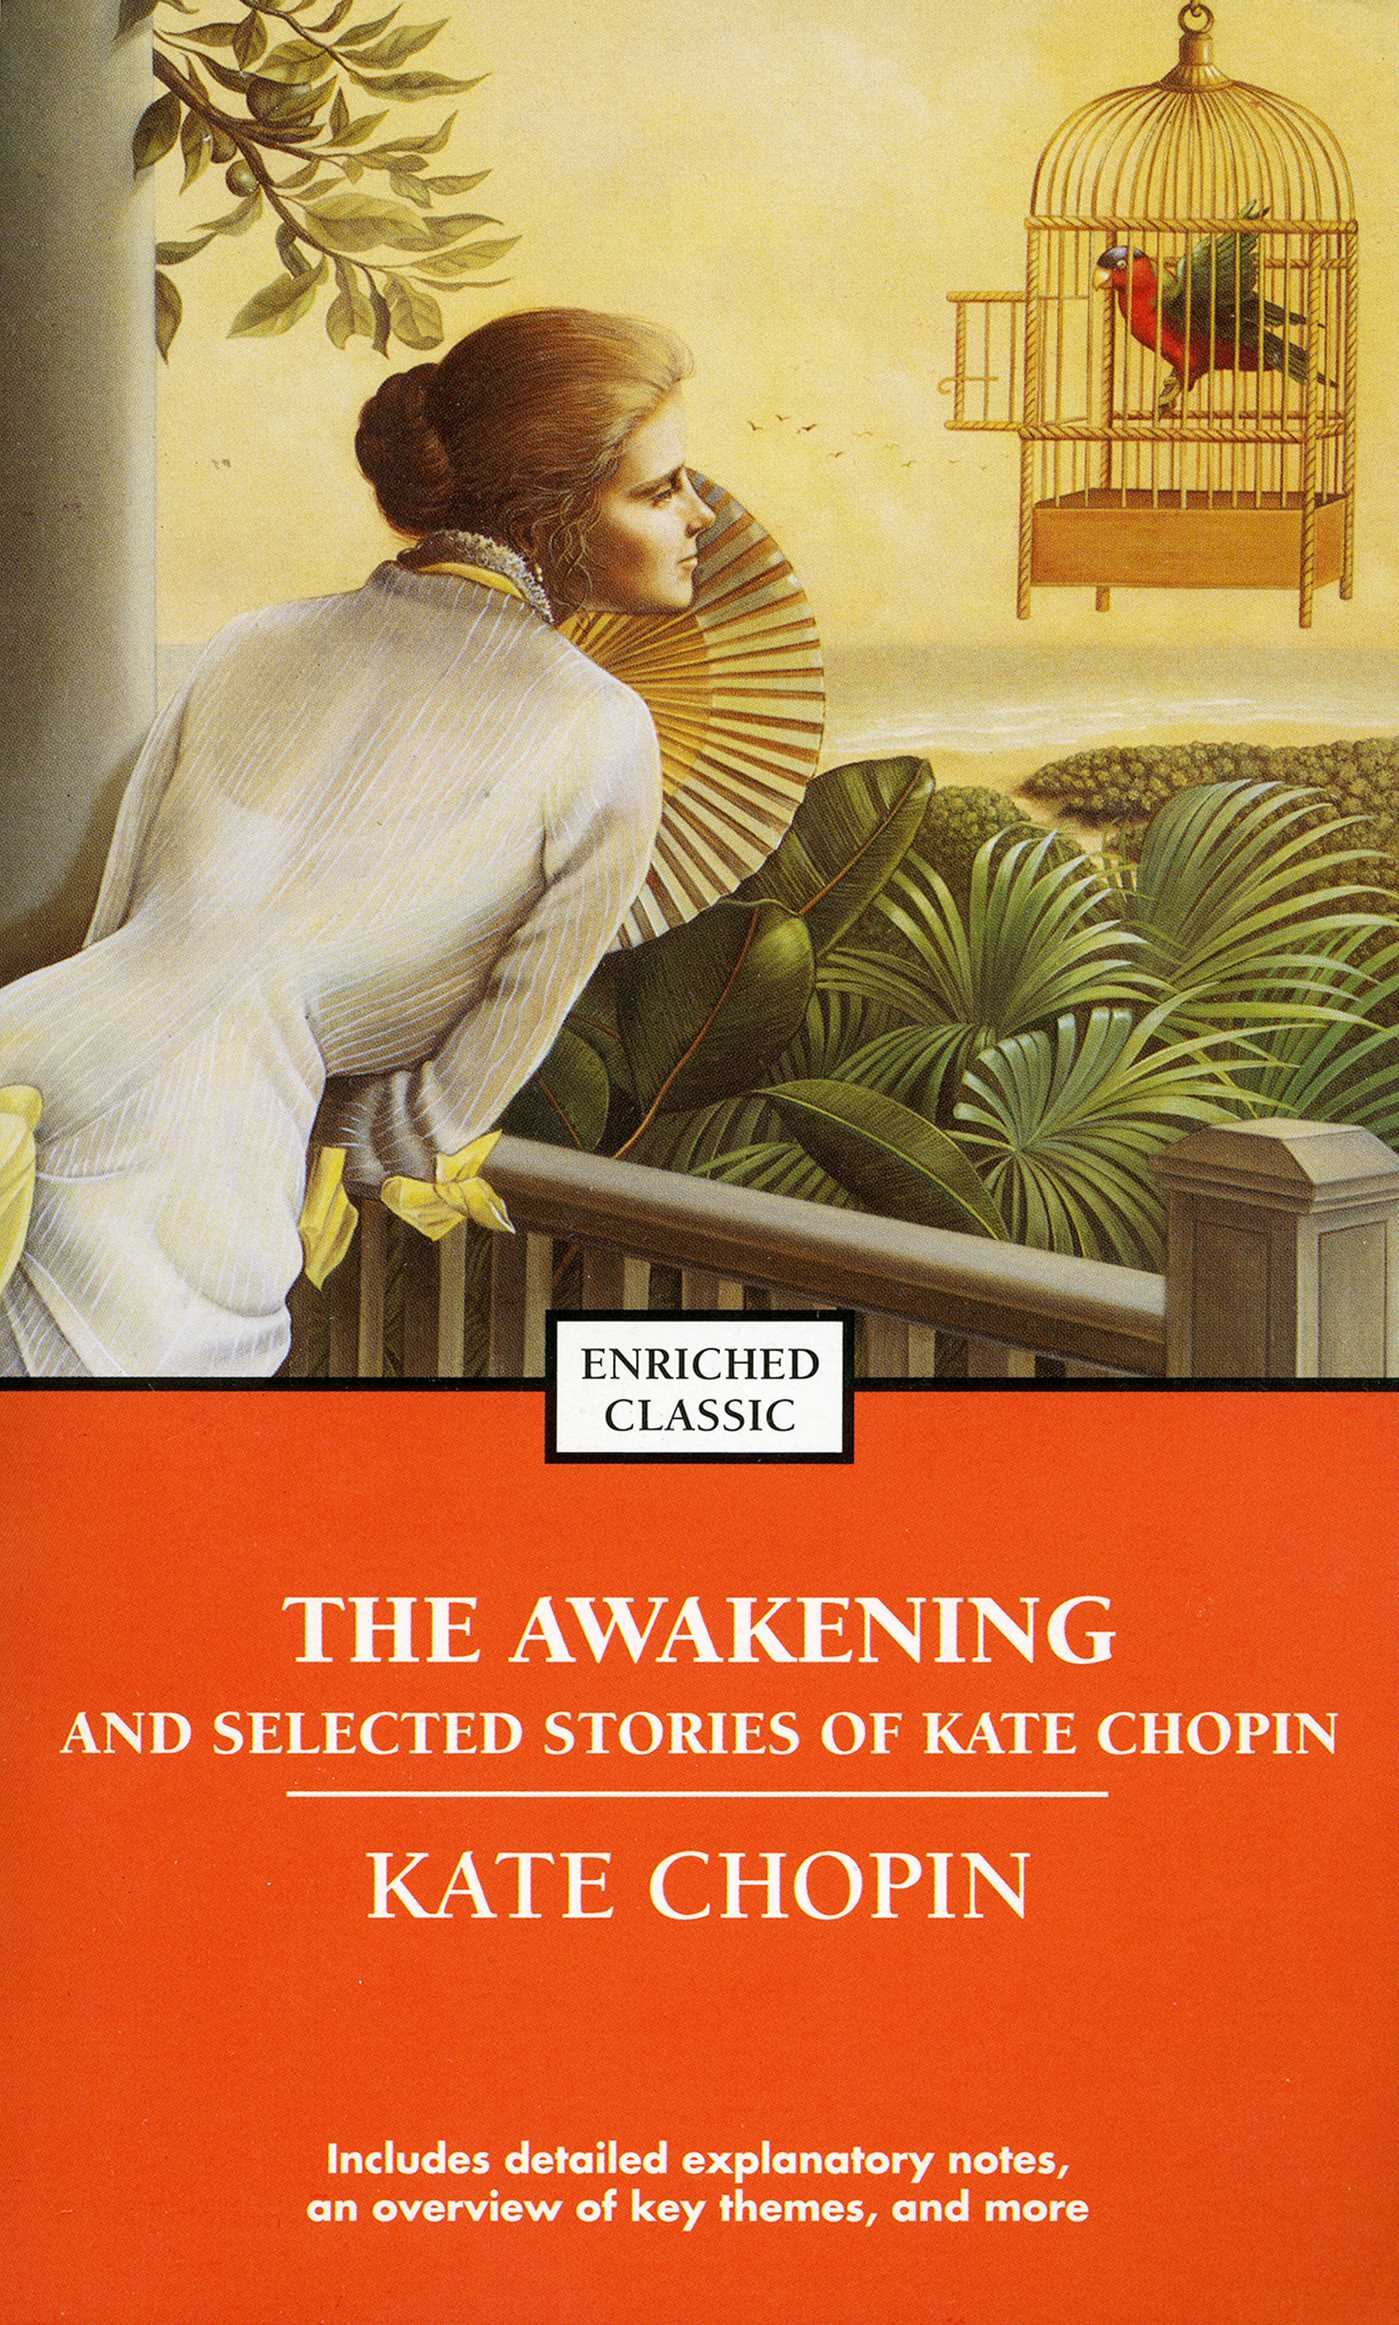 essays on kate chopins the awakening Kate chopin - the awakening 4 pages 1090 words november 2014 saved essays save your essays here so you can locate them quickly.